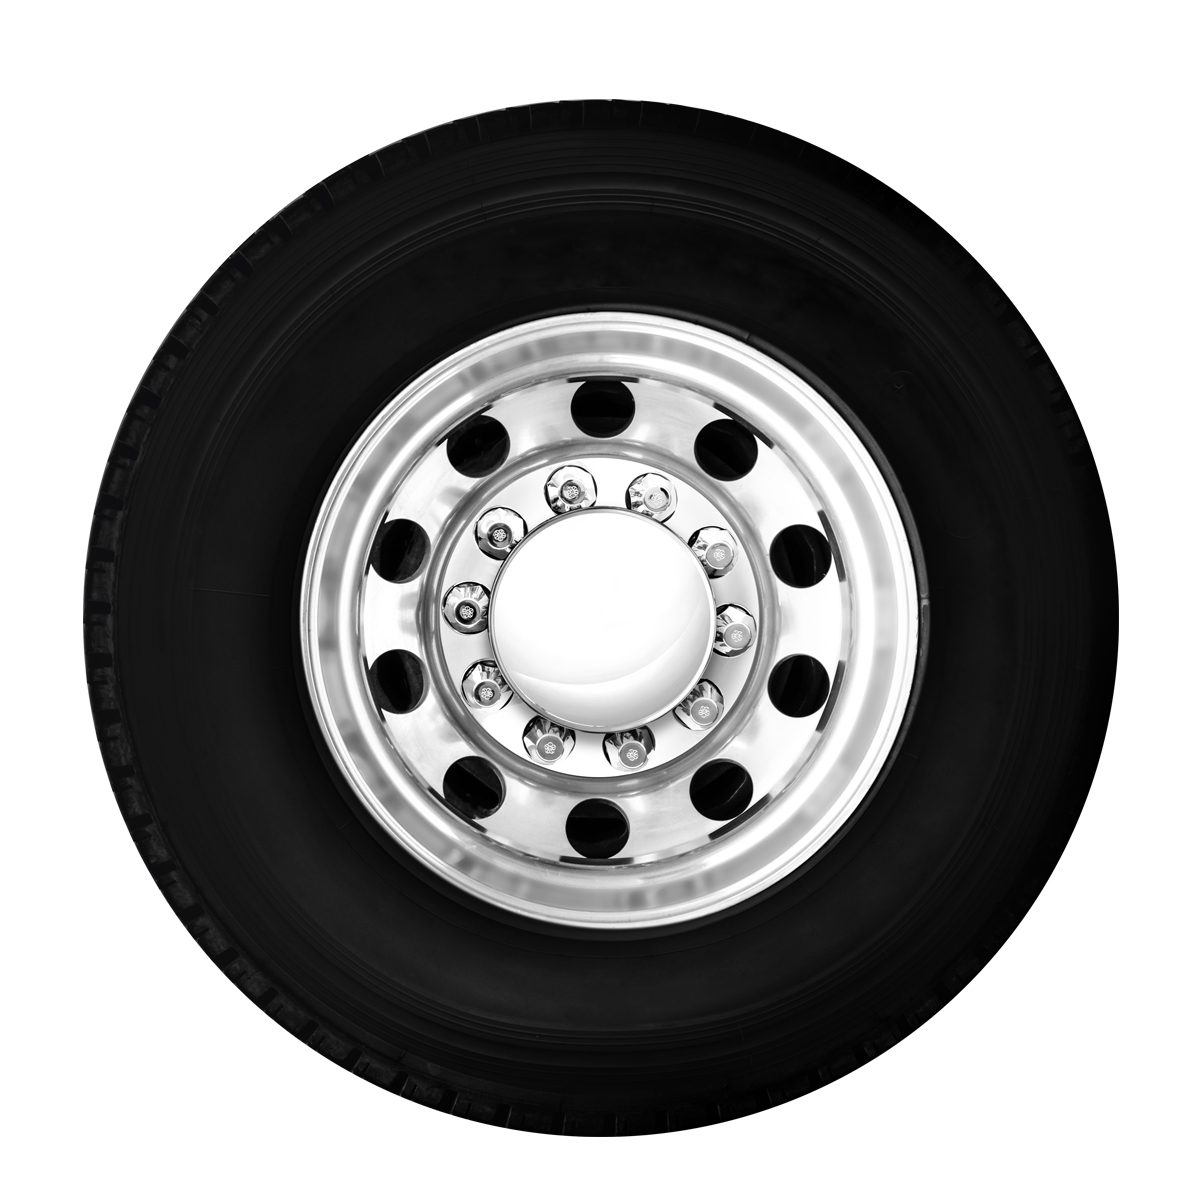 Rear Axle View - Chrome Plastic Complete Axle Cover Sets with Round Hub Caps